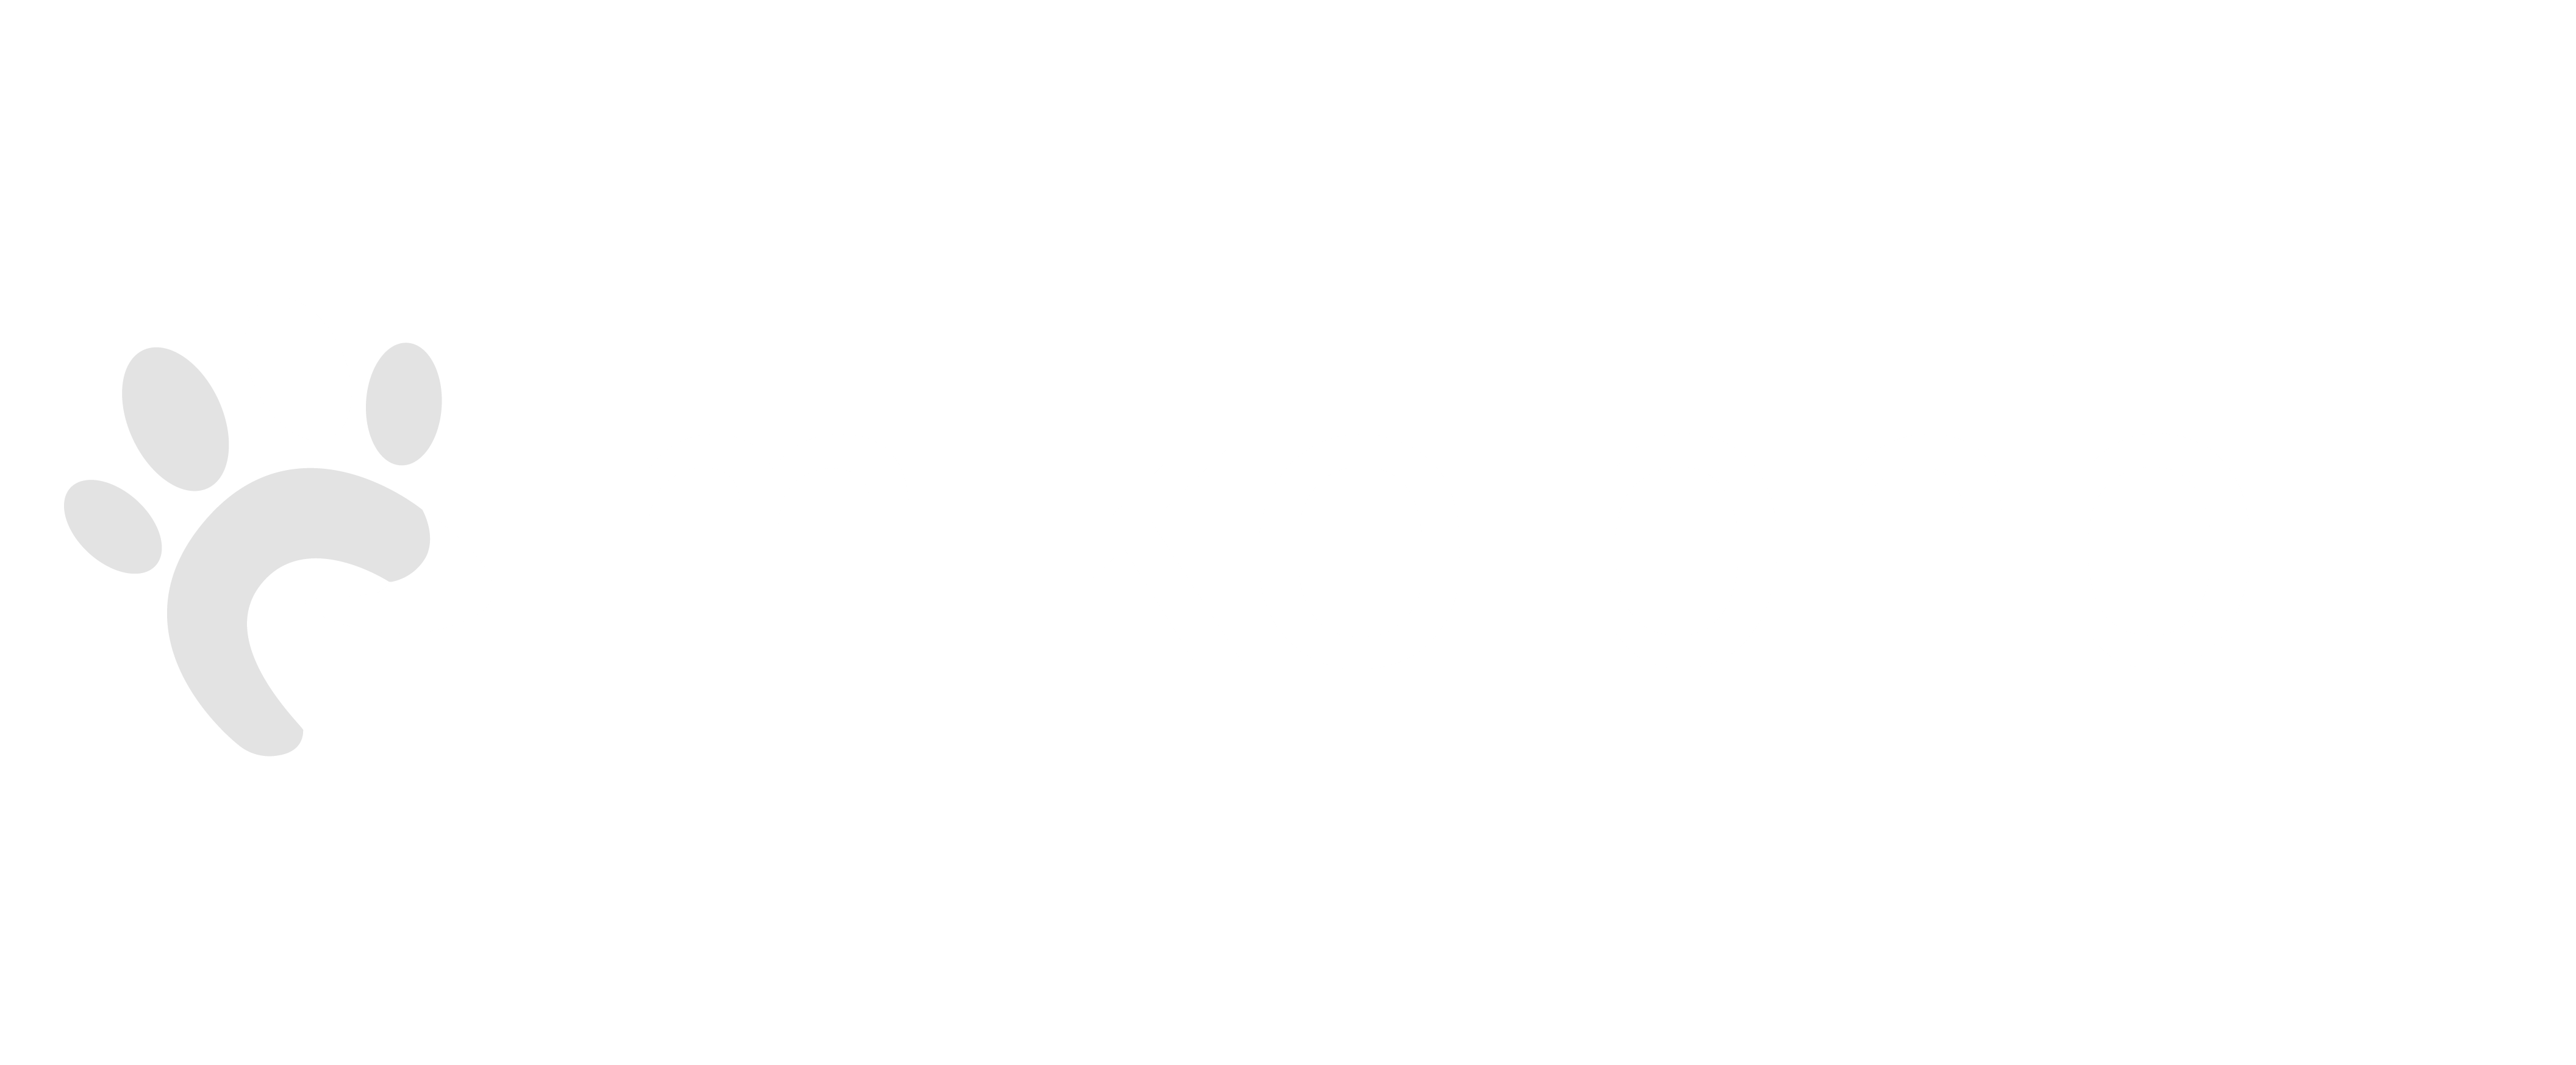 Mikebnb